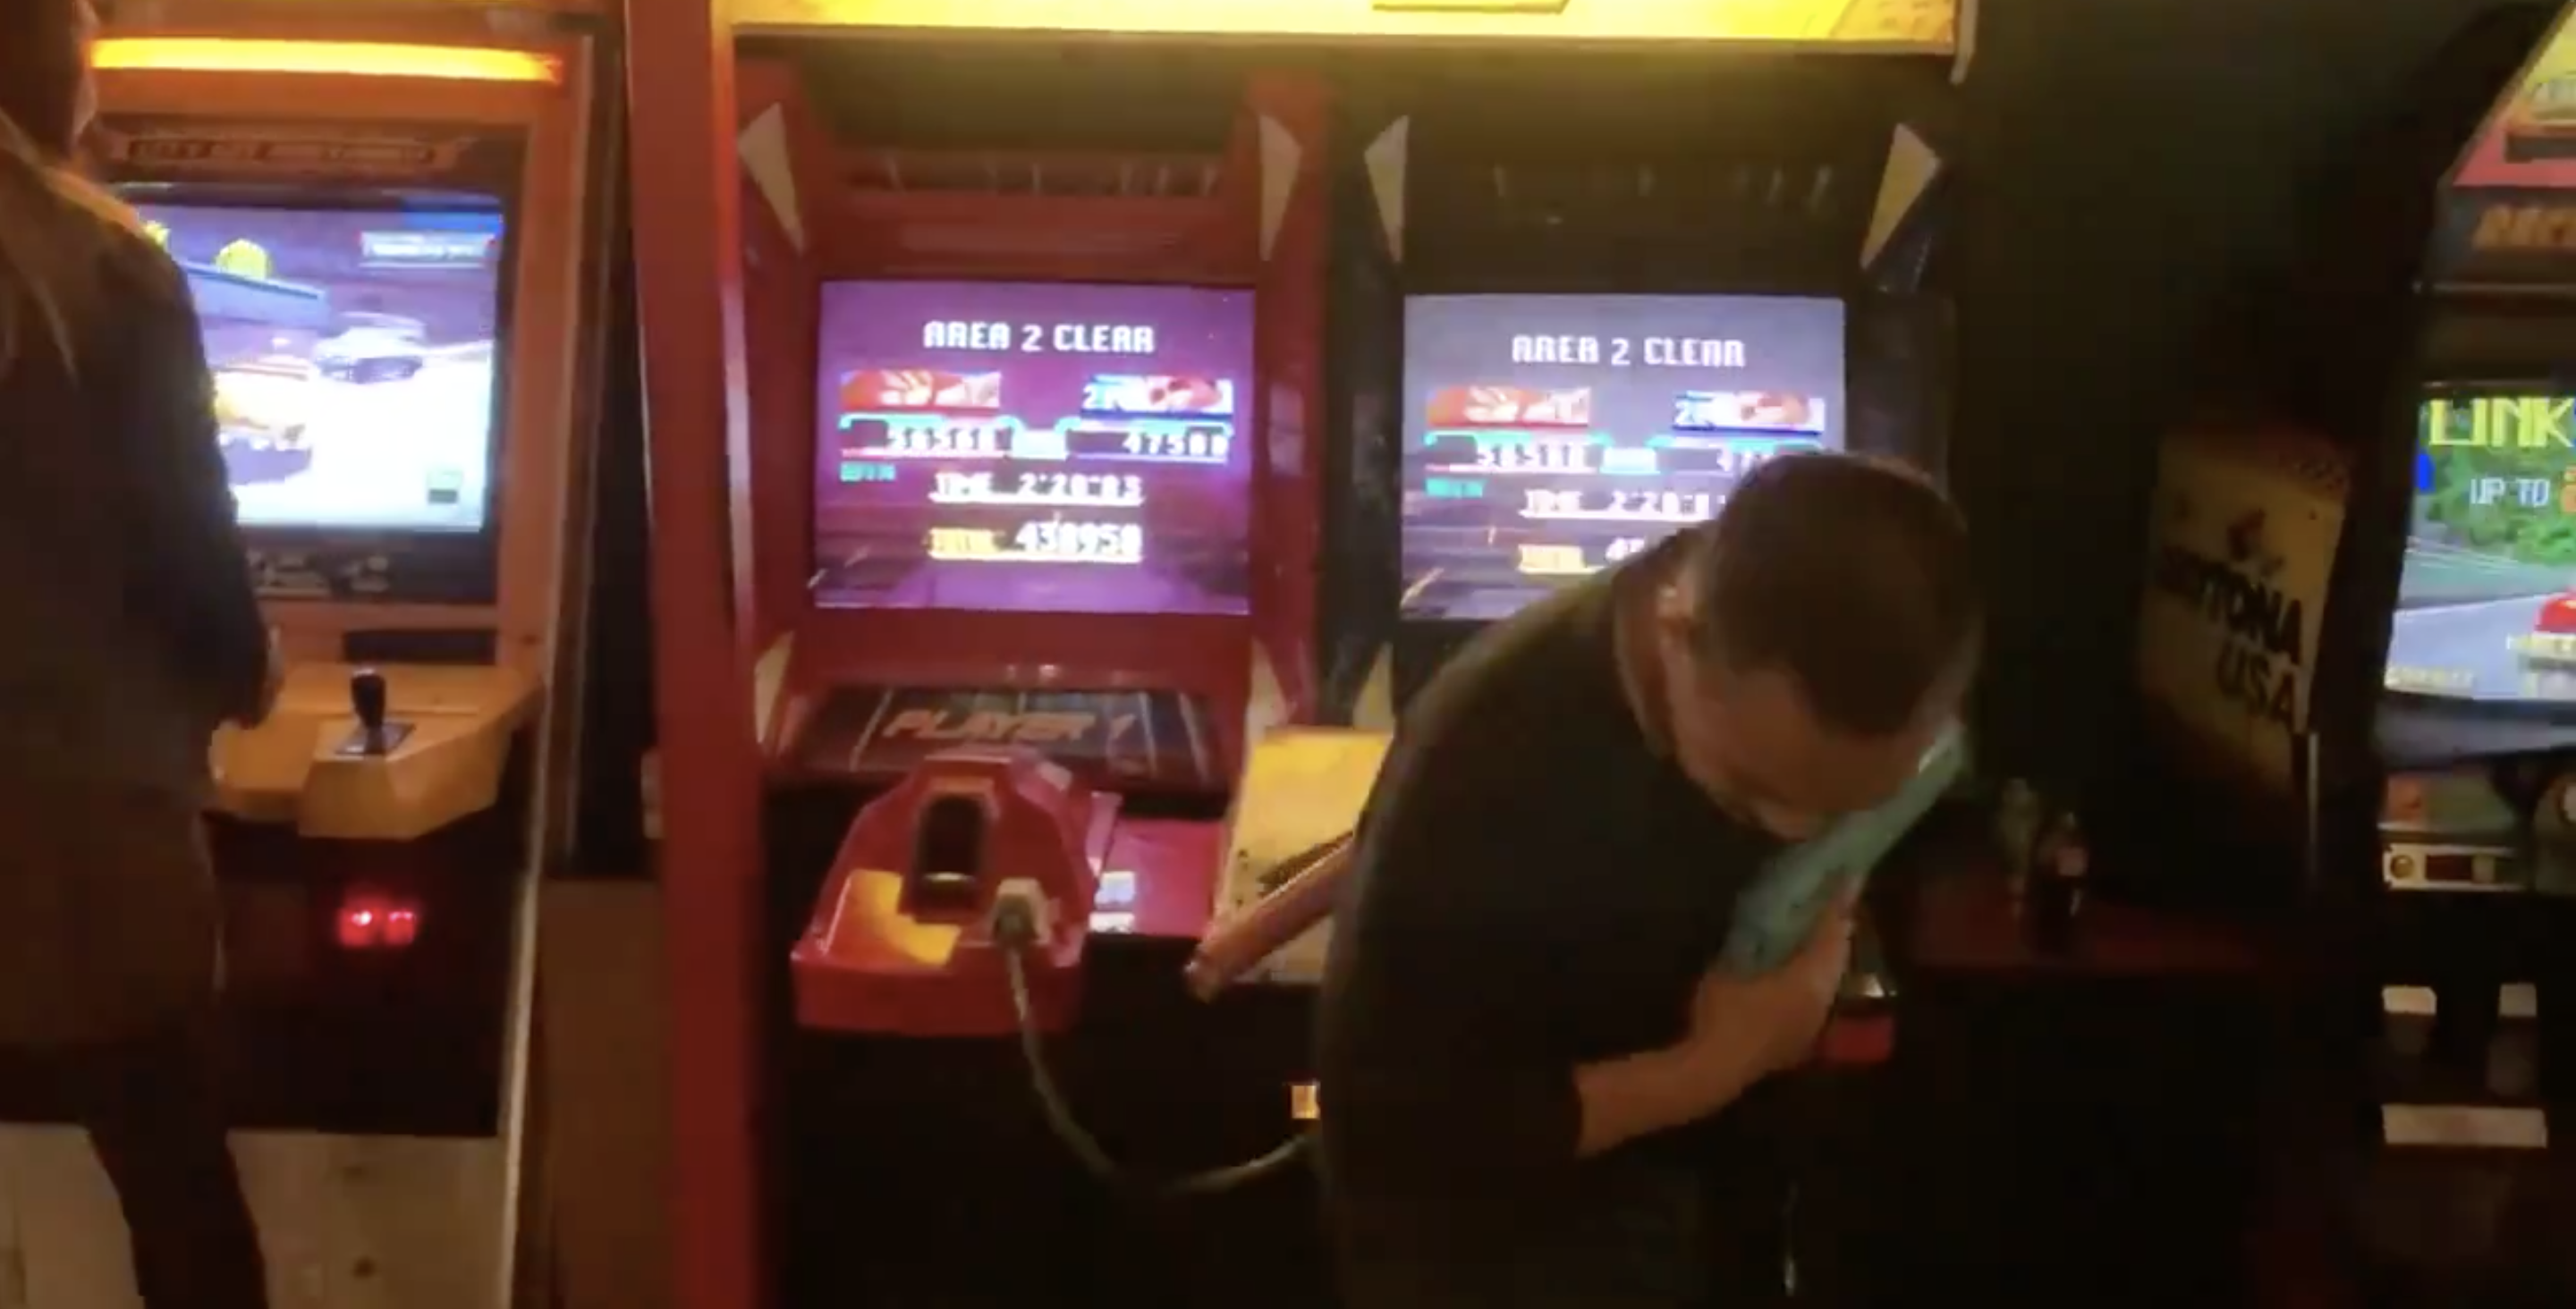 Watch This Man Complete A Two-Player Arcade Game, All By Himself, With Just One Coin